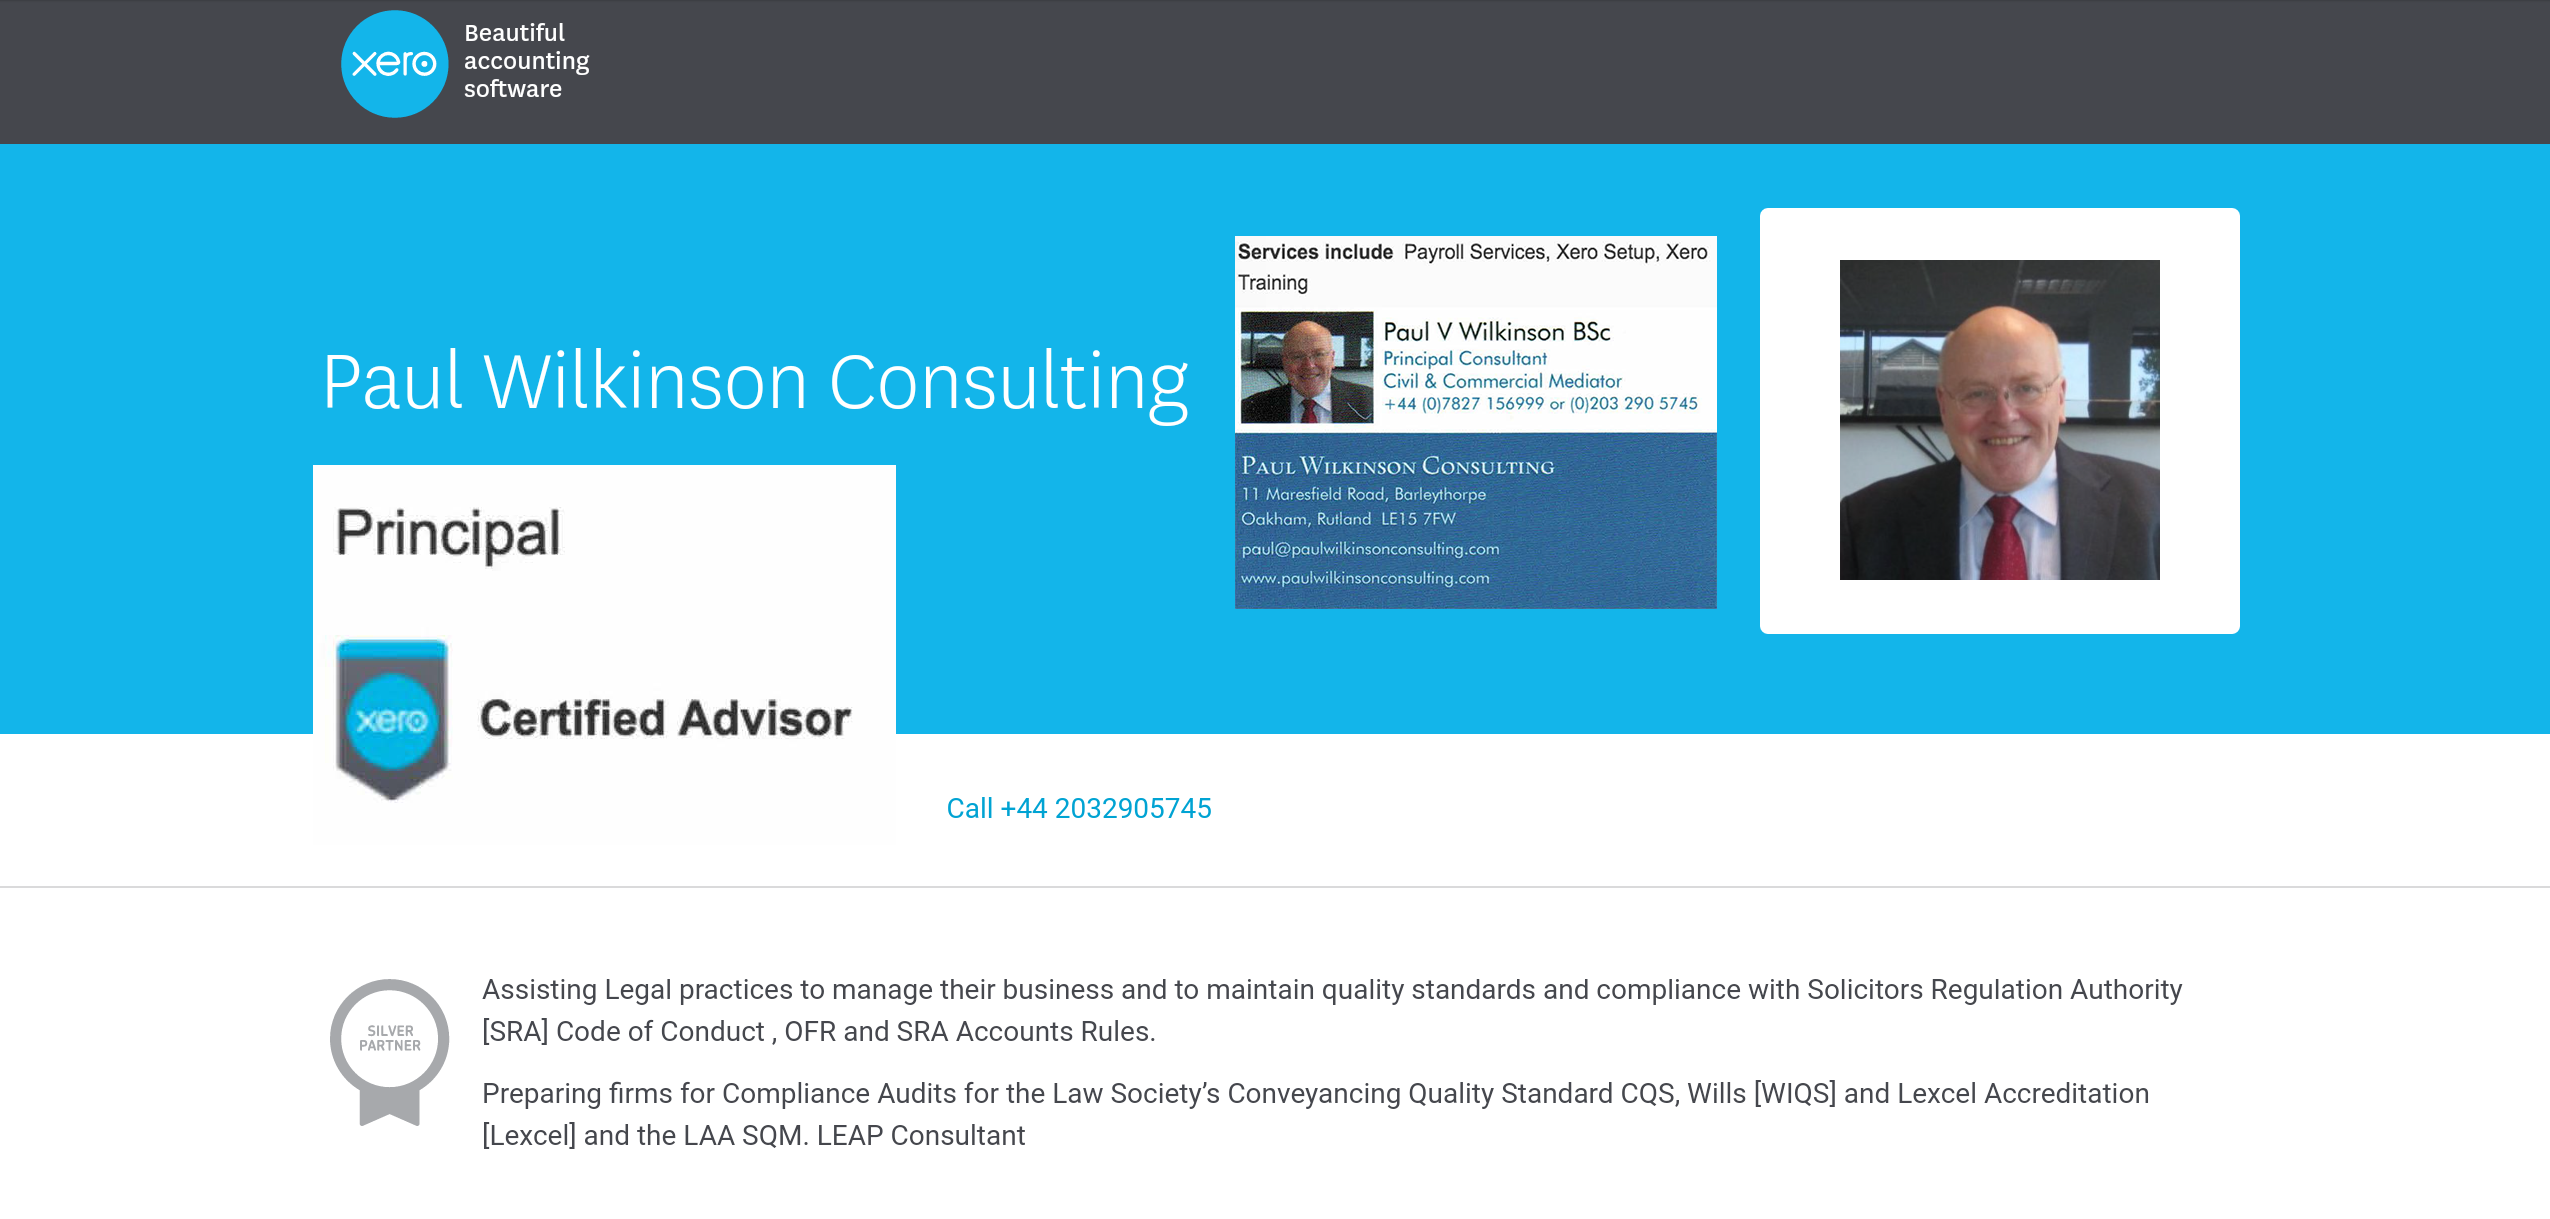 Compliance quality standards for law compliance and quality paul is also a xero certified advisor and xero silver partner with xero online accounting software which is fully integrated with leap legal software 1betcityfo Gallery